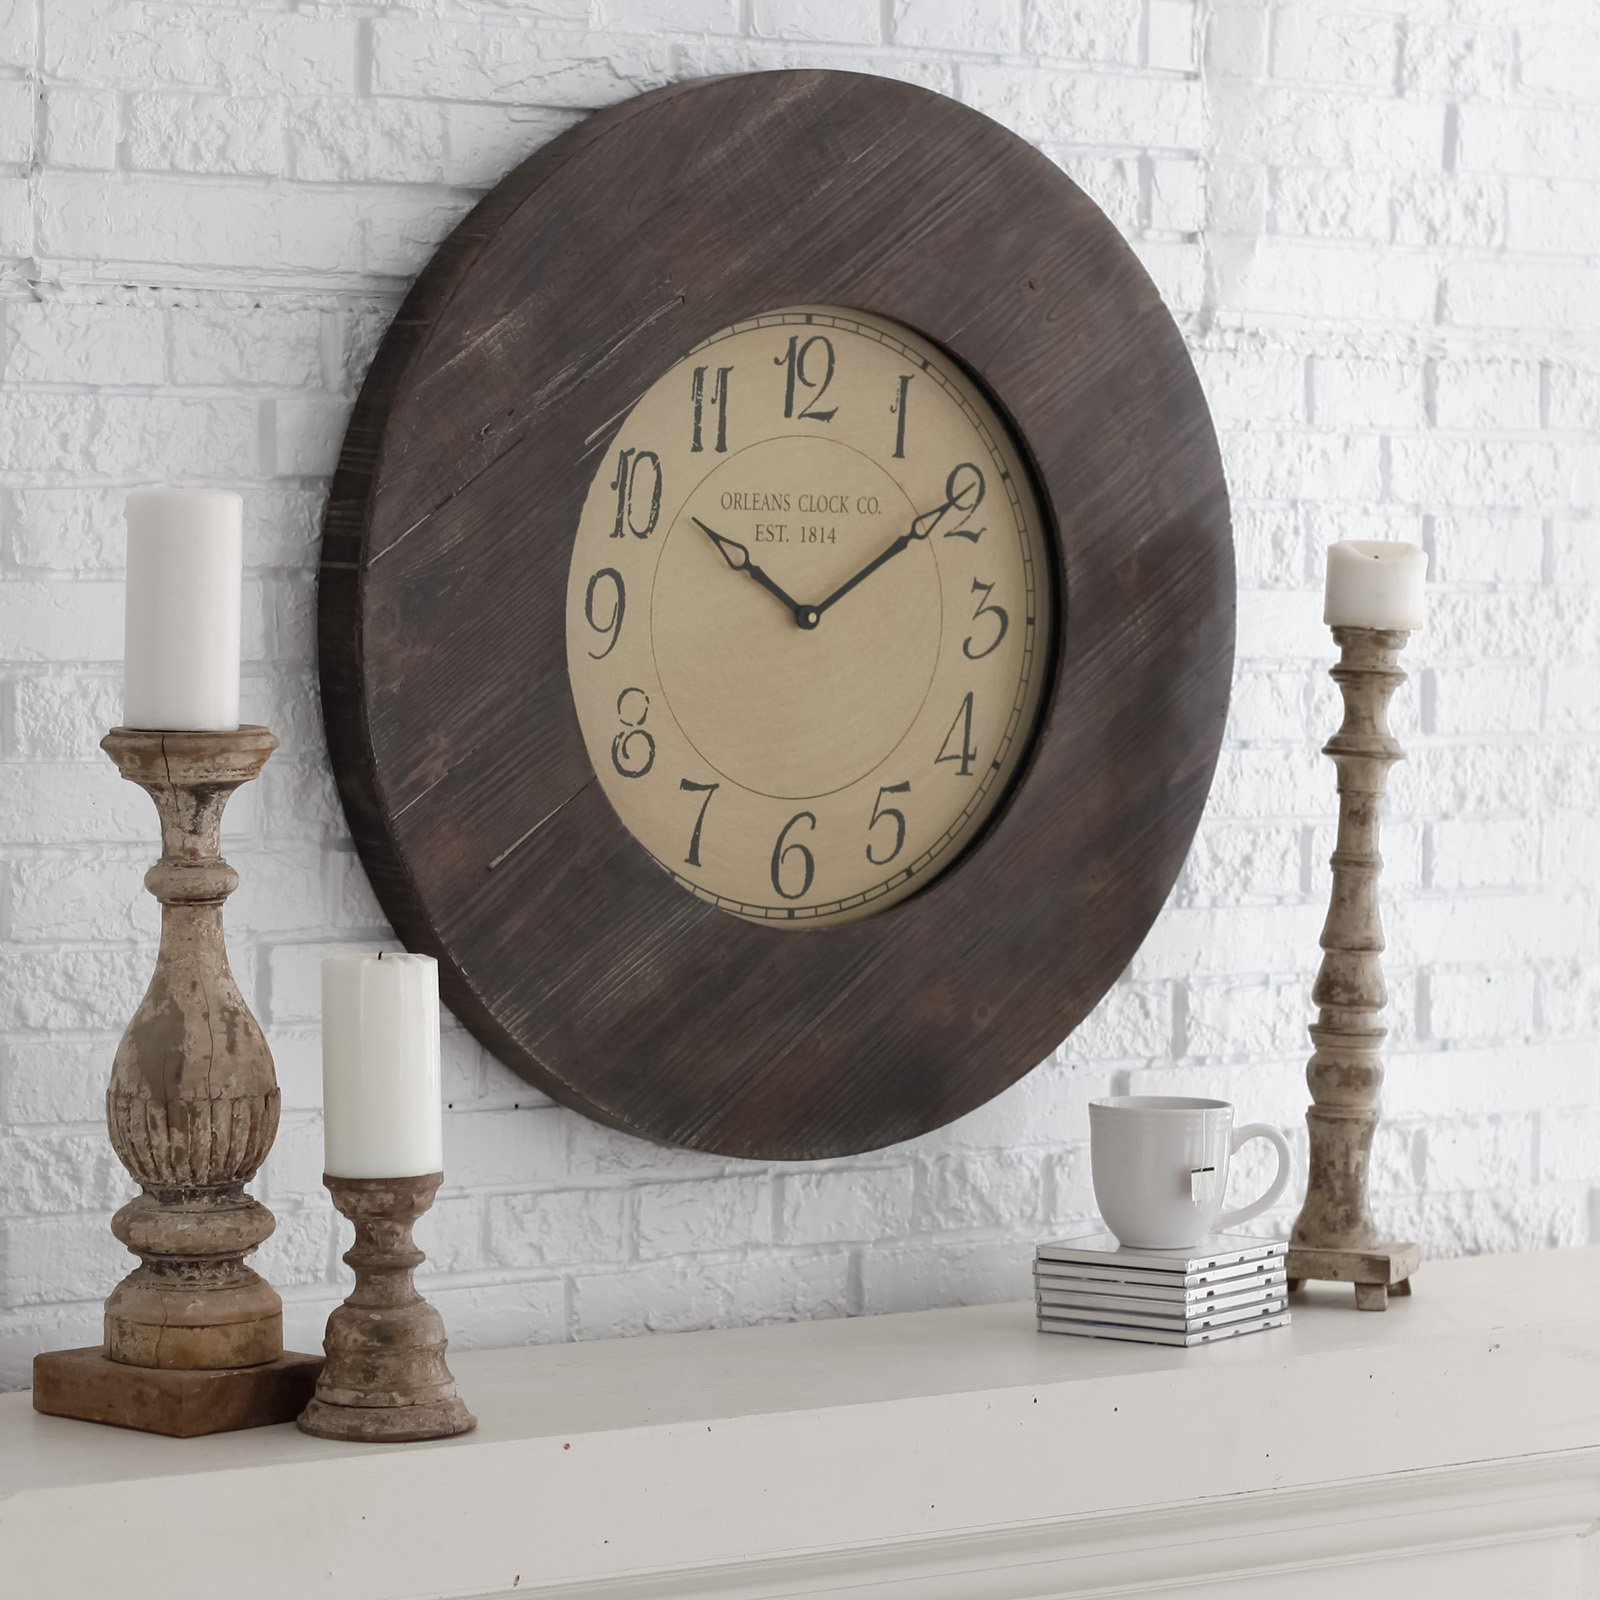 Furniture rustic oversized wall clocks in brown oversized wall clocks with wooden frame on white wall amipublicfo Choice Image